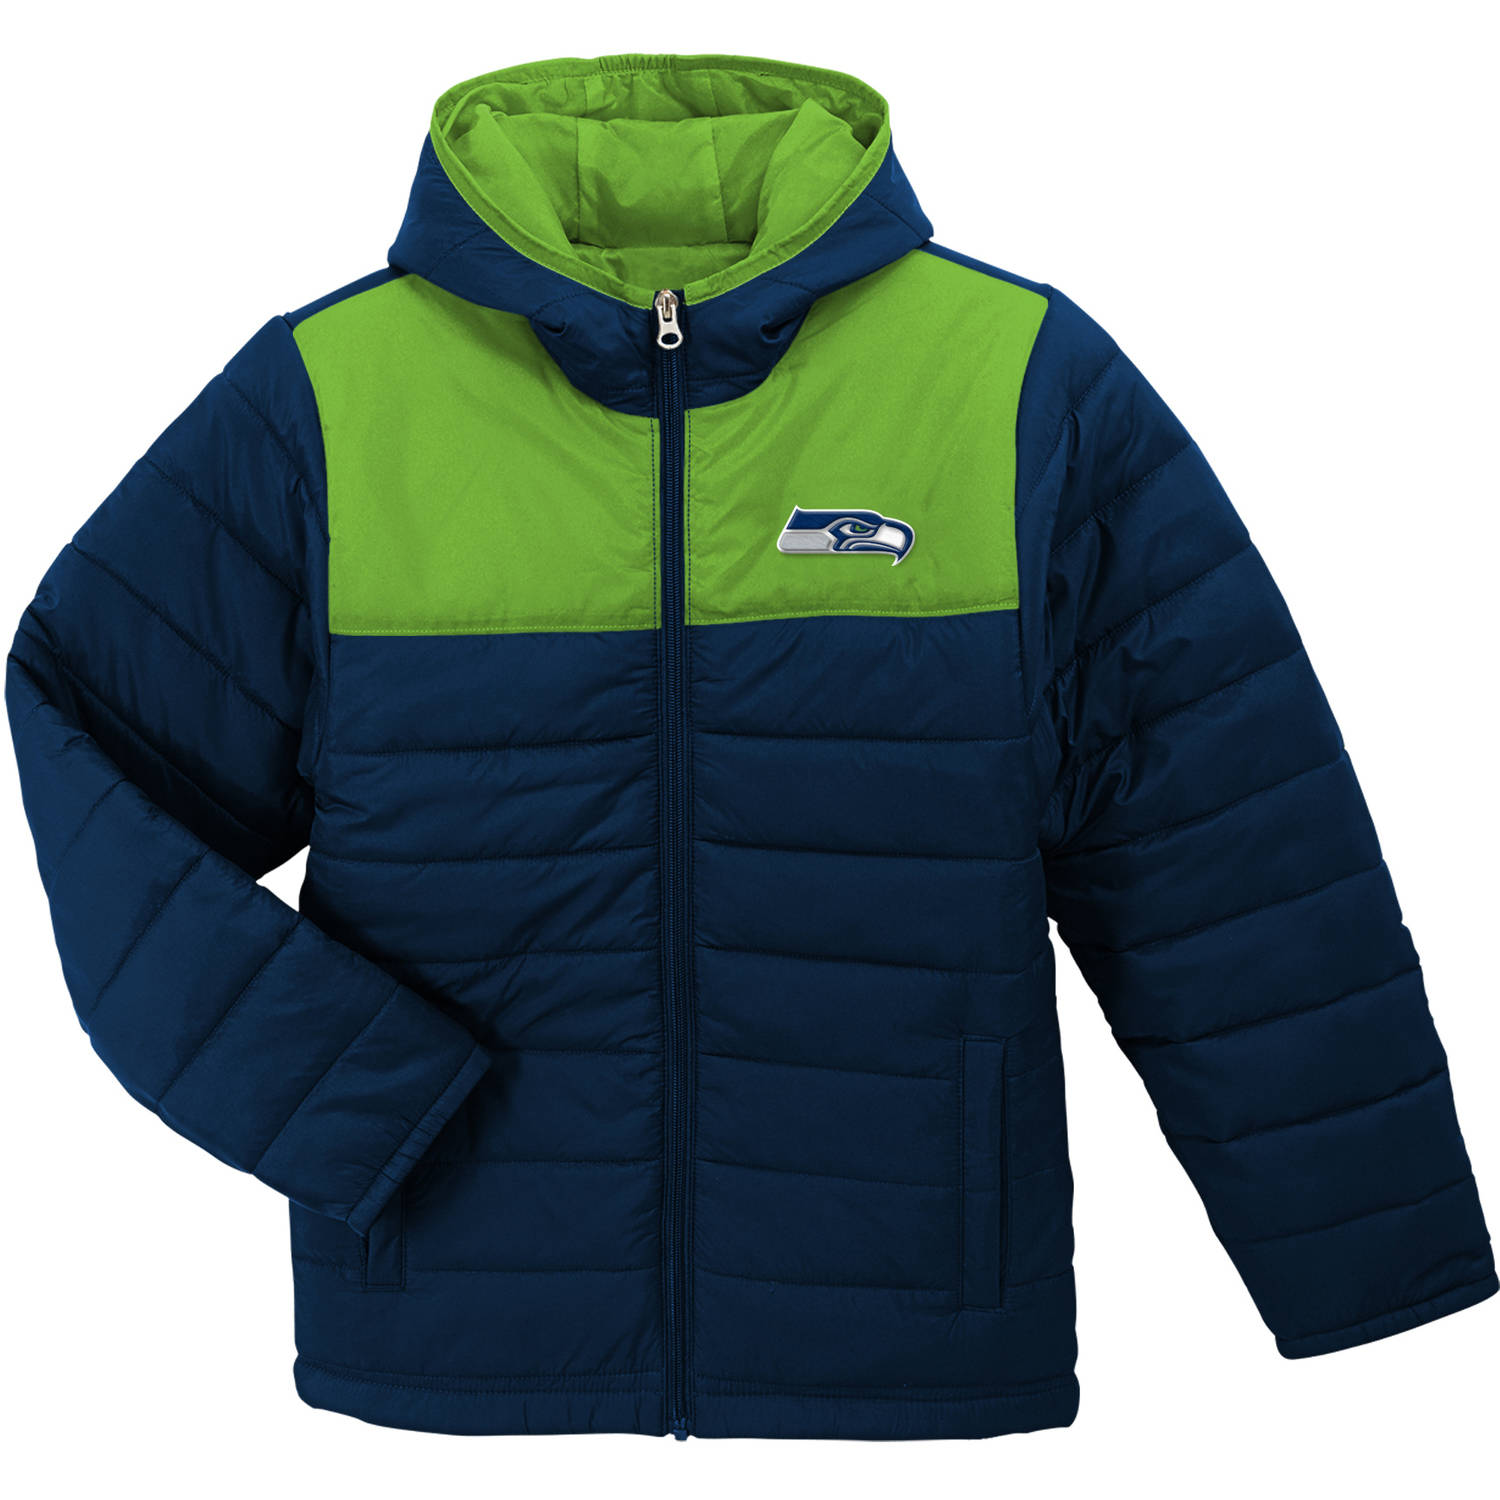 NFL Seattle Seahawks Youth Winter Jacket